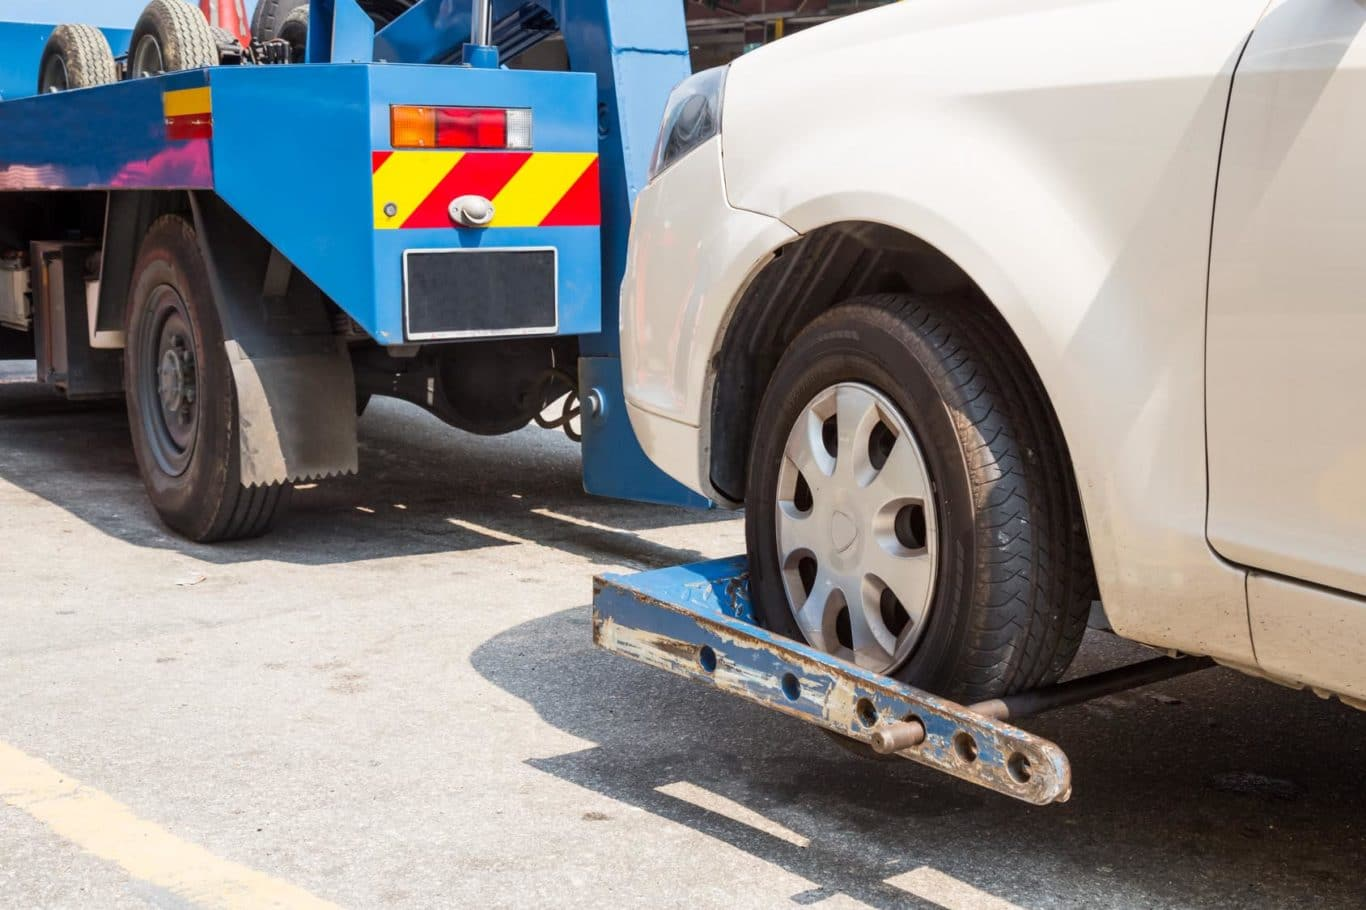 Oldcastle, County Meath expert Roadside Assistance services